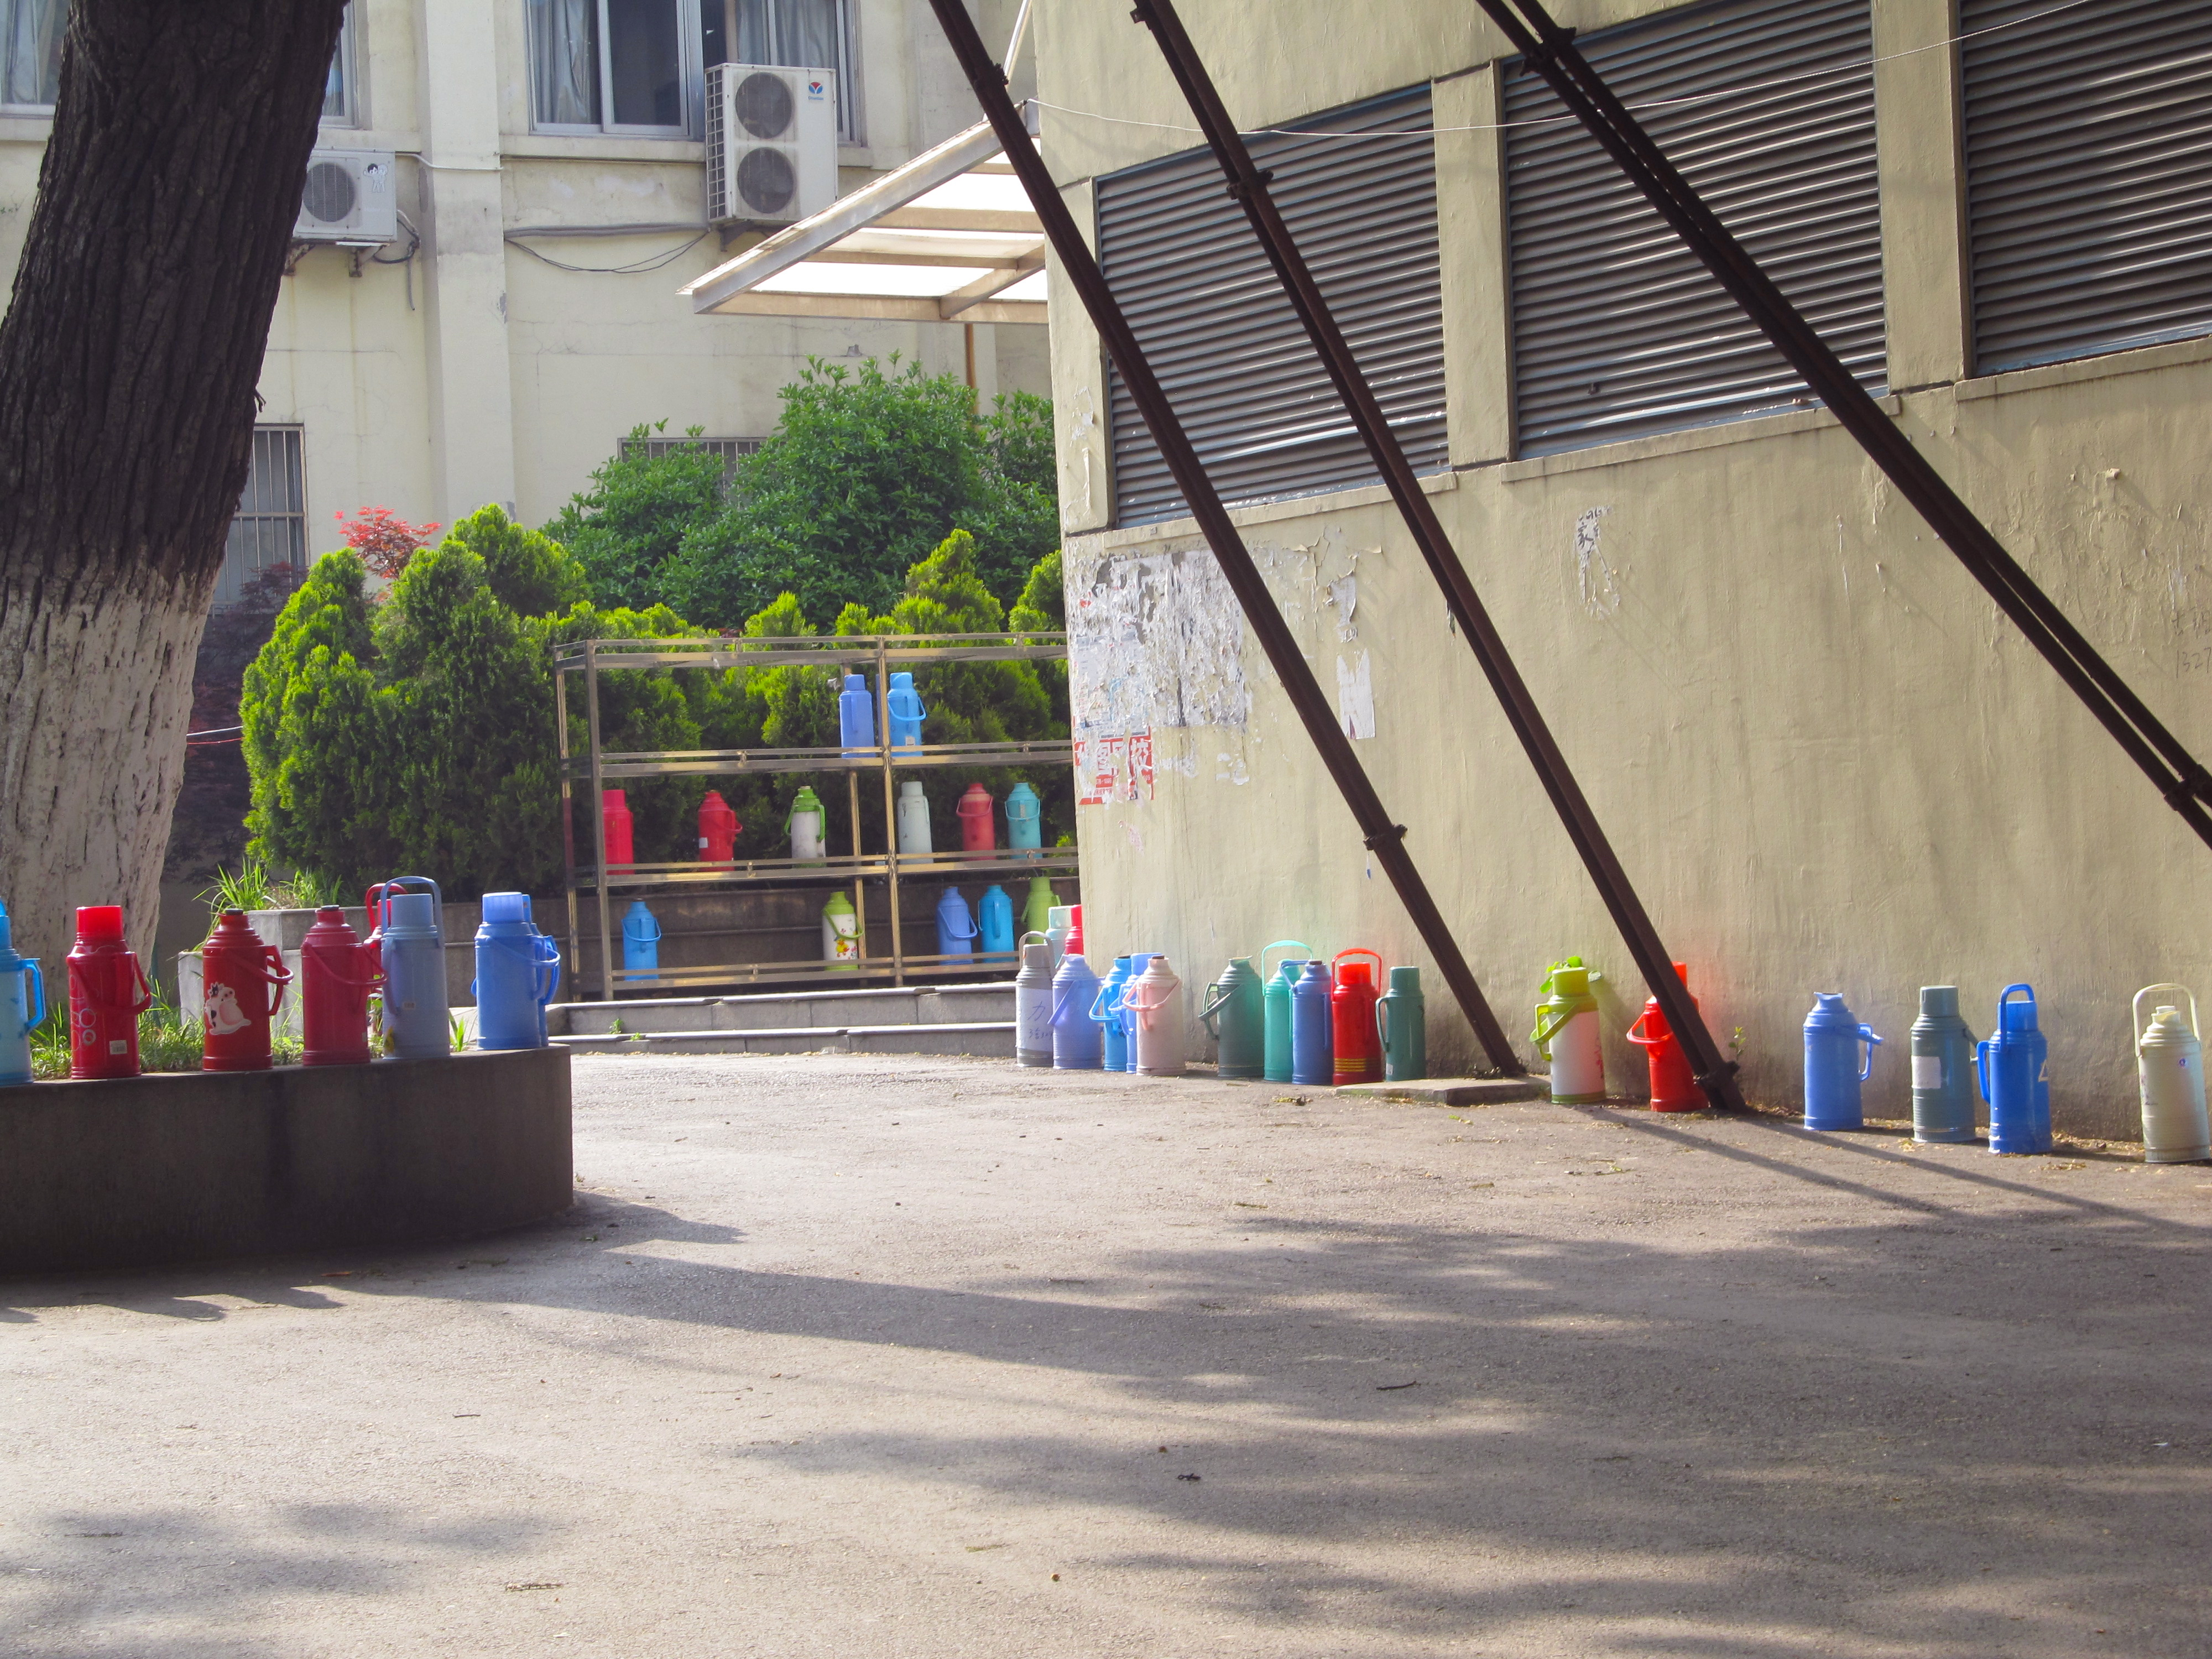 Hot water thermos bottles waiting to be filled on Nanjing University's campus.